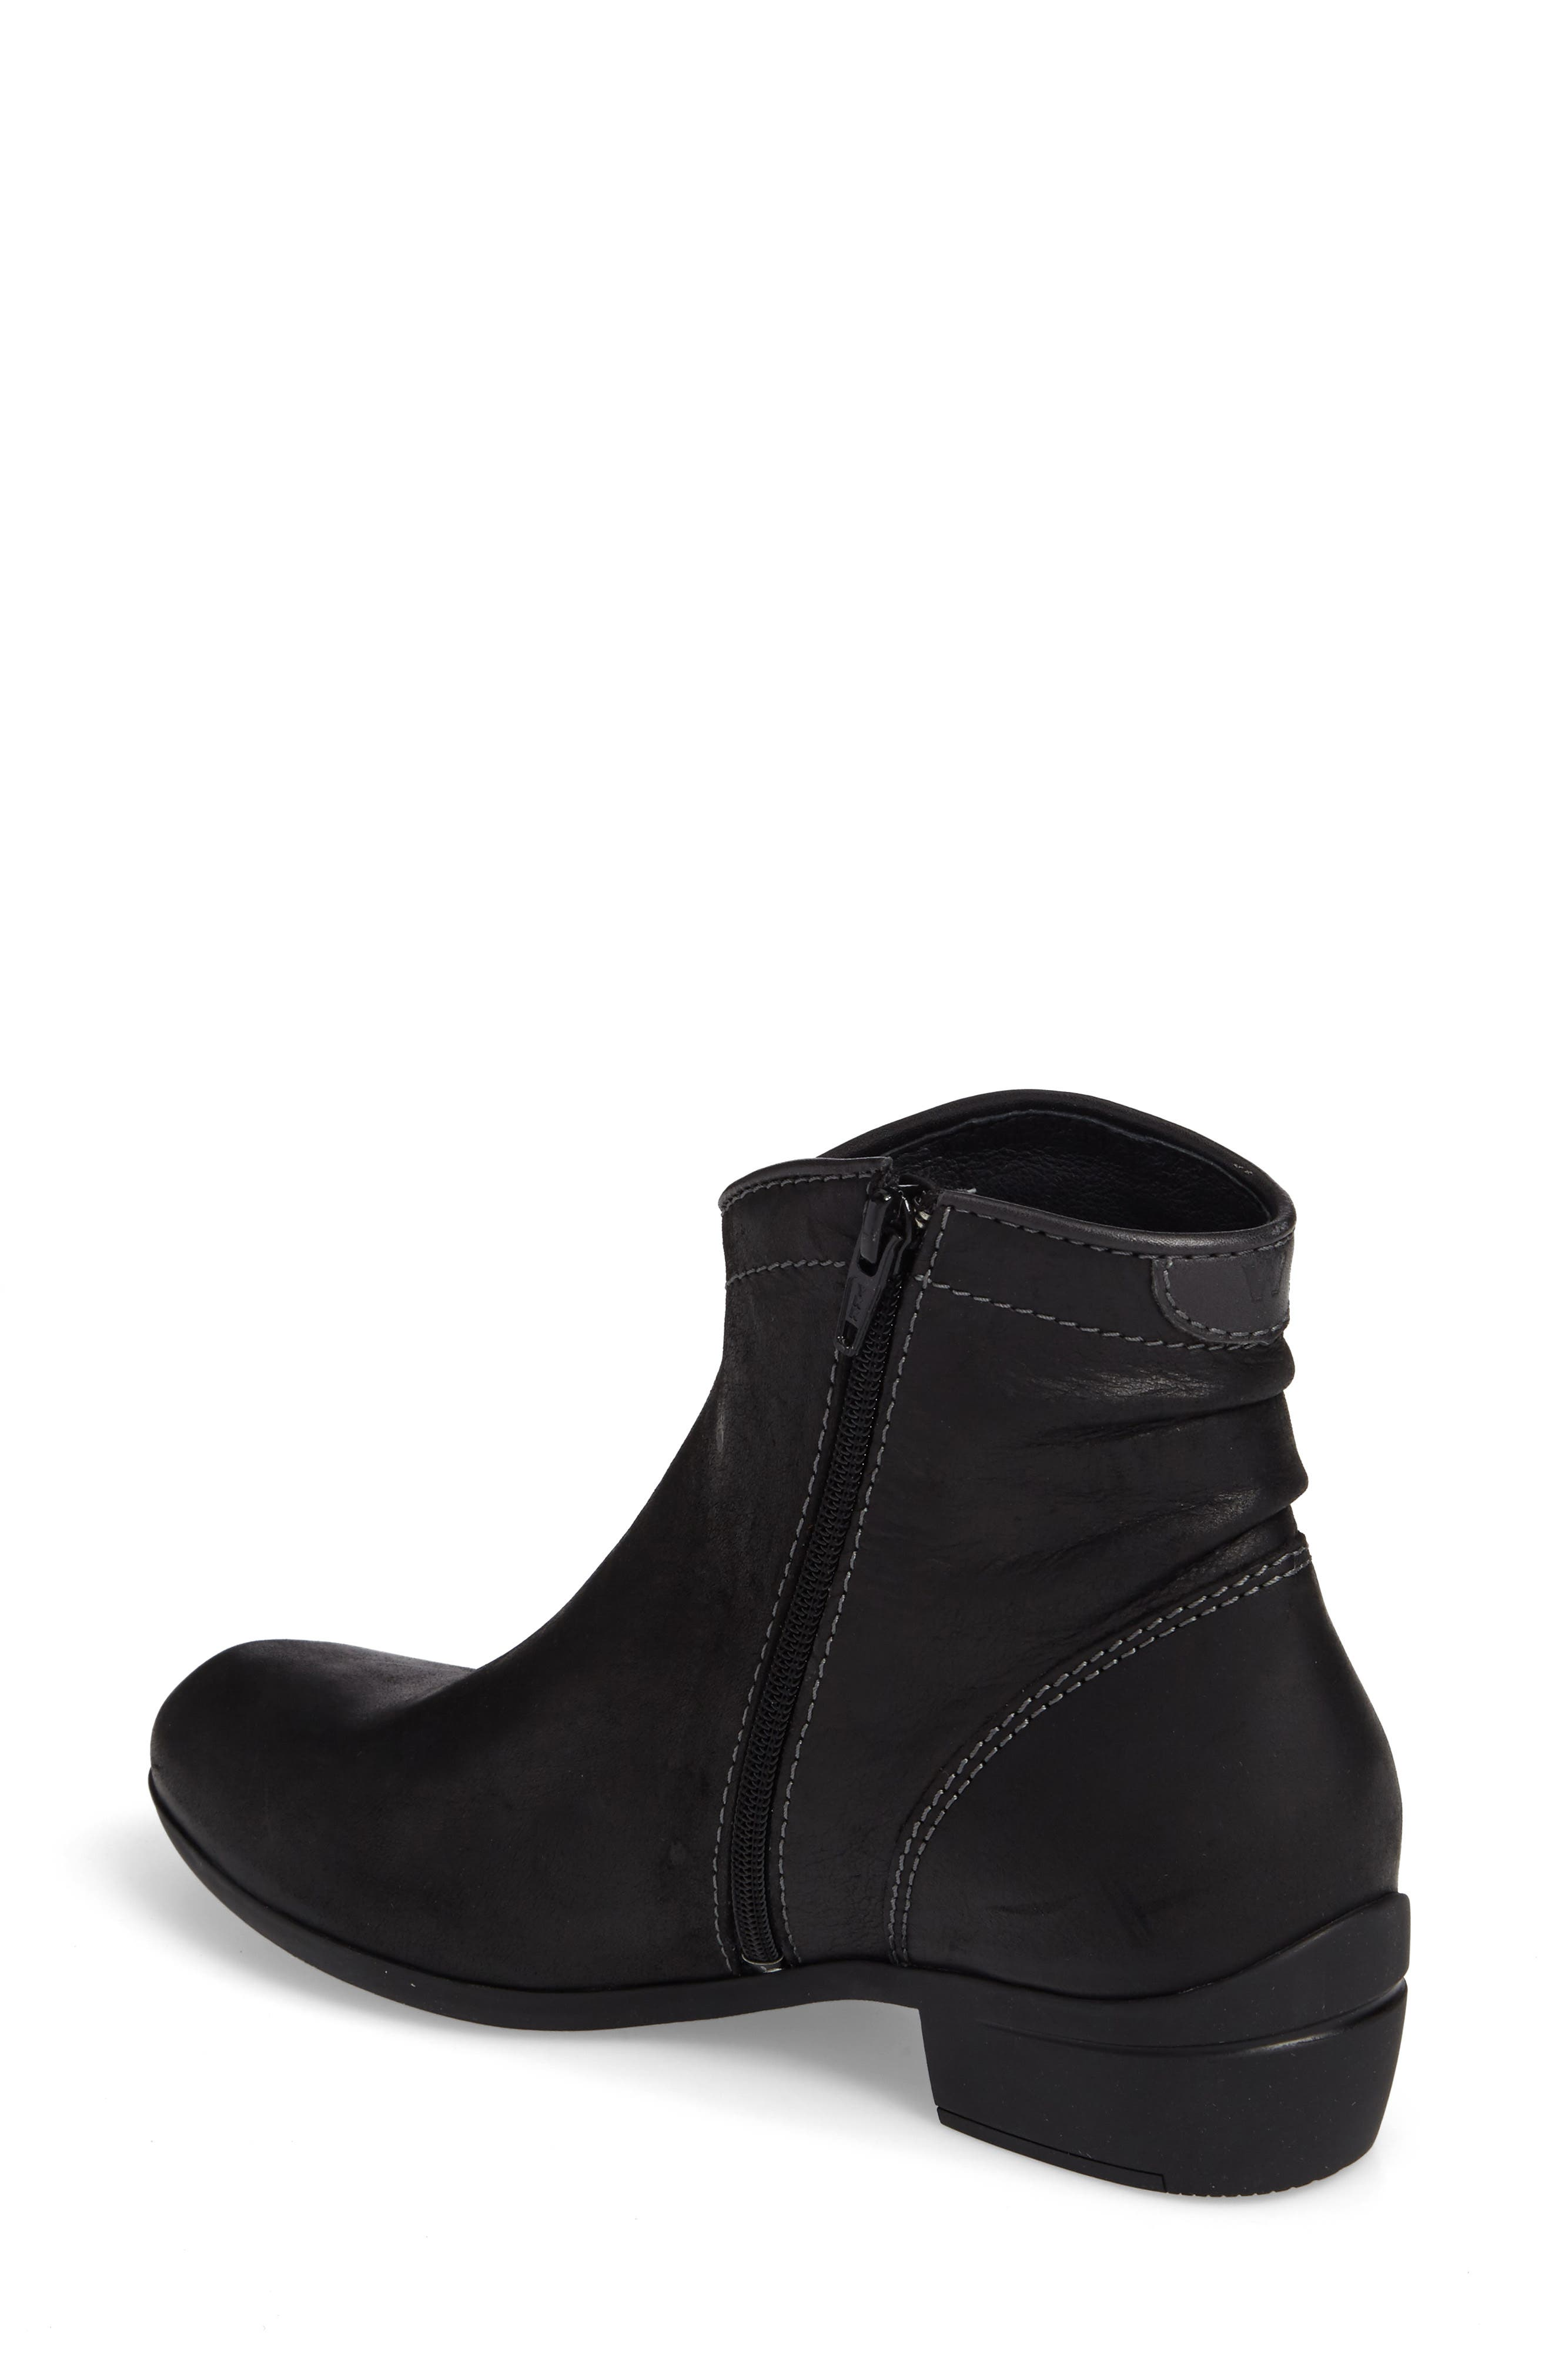 Winchester Bootie,                             Alternate thumbnail 2, color,                             001